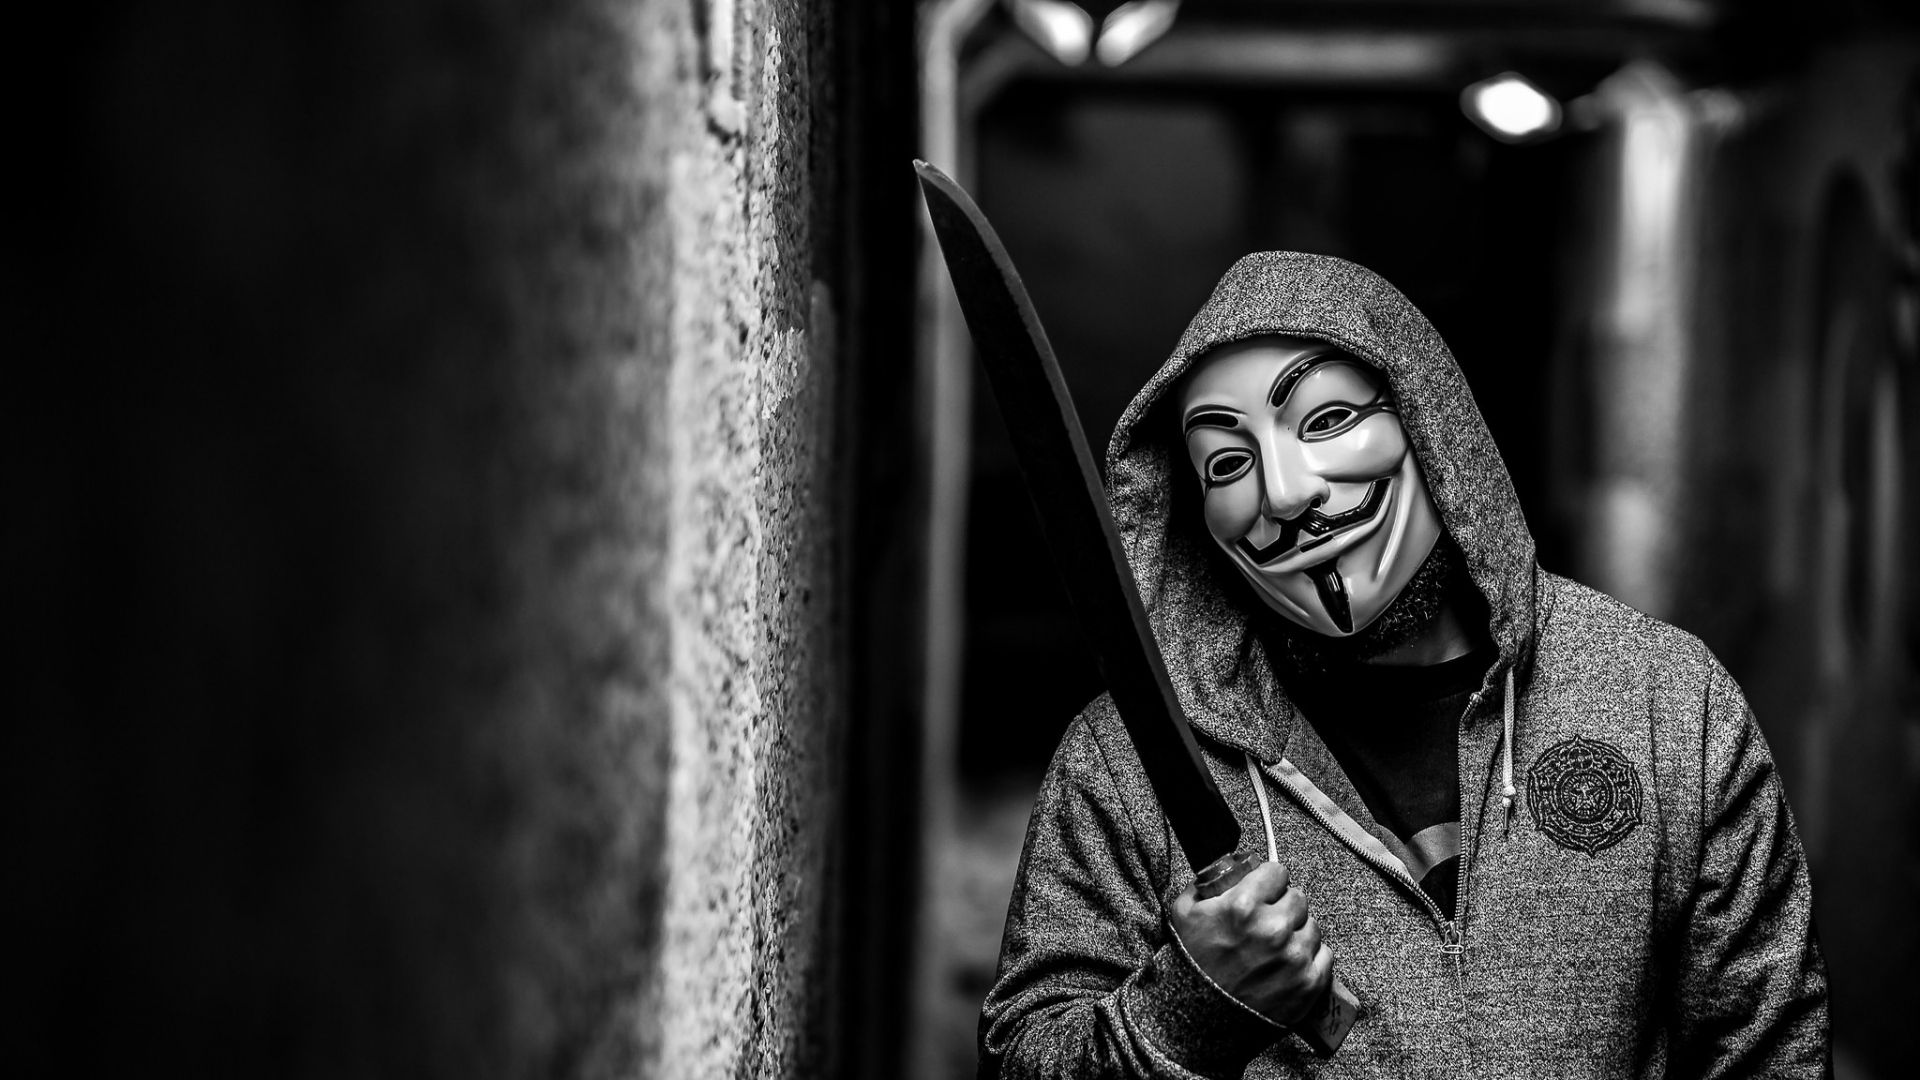 Anonymoushackers Hire A Hacker Get Proof Before Payment - 1244×700